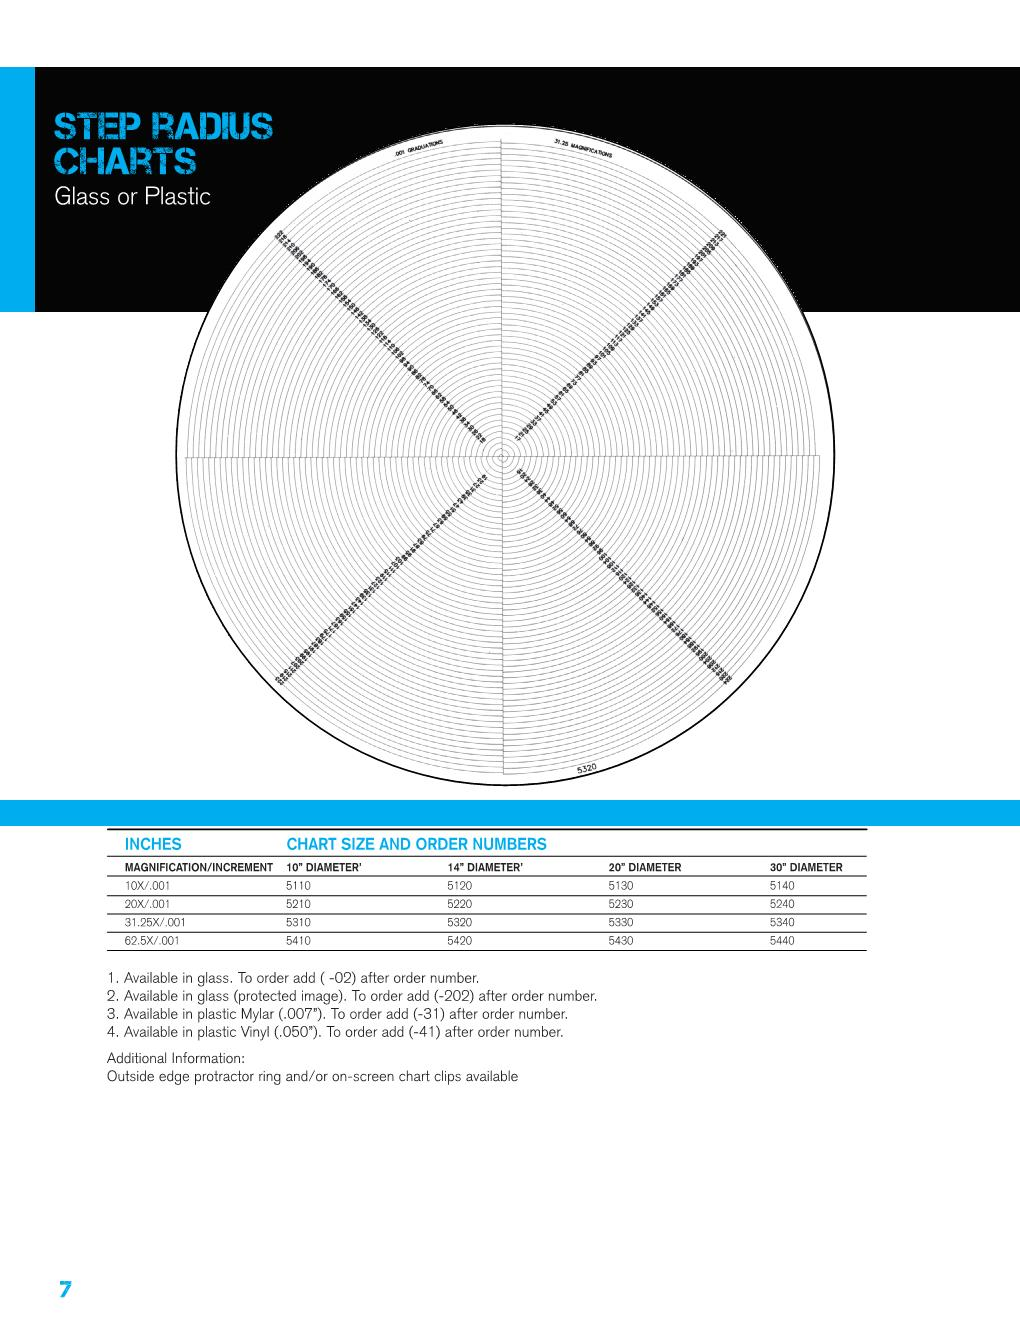 Unlimited Services Chart & Fixture Catalog 12.2018 FINAL Page 008.jpg